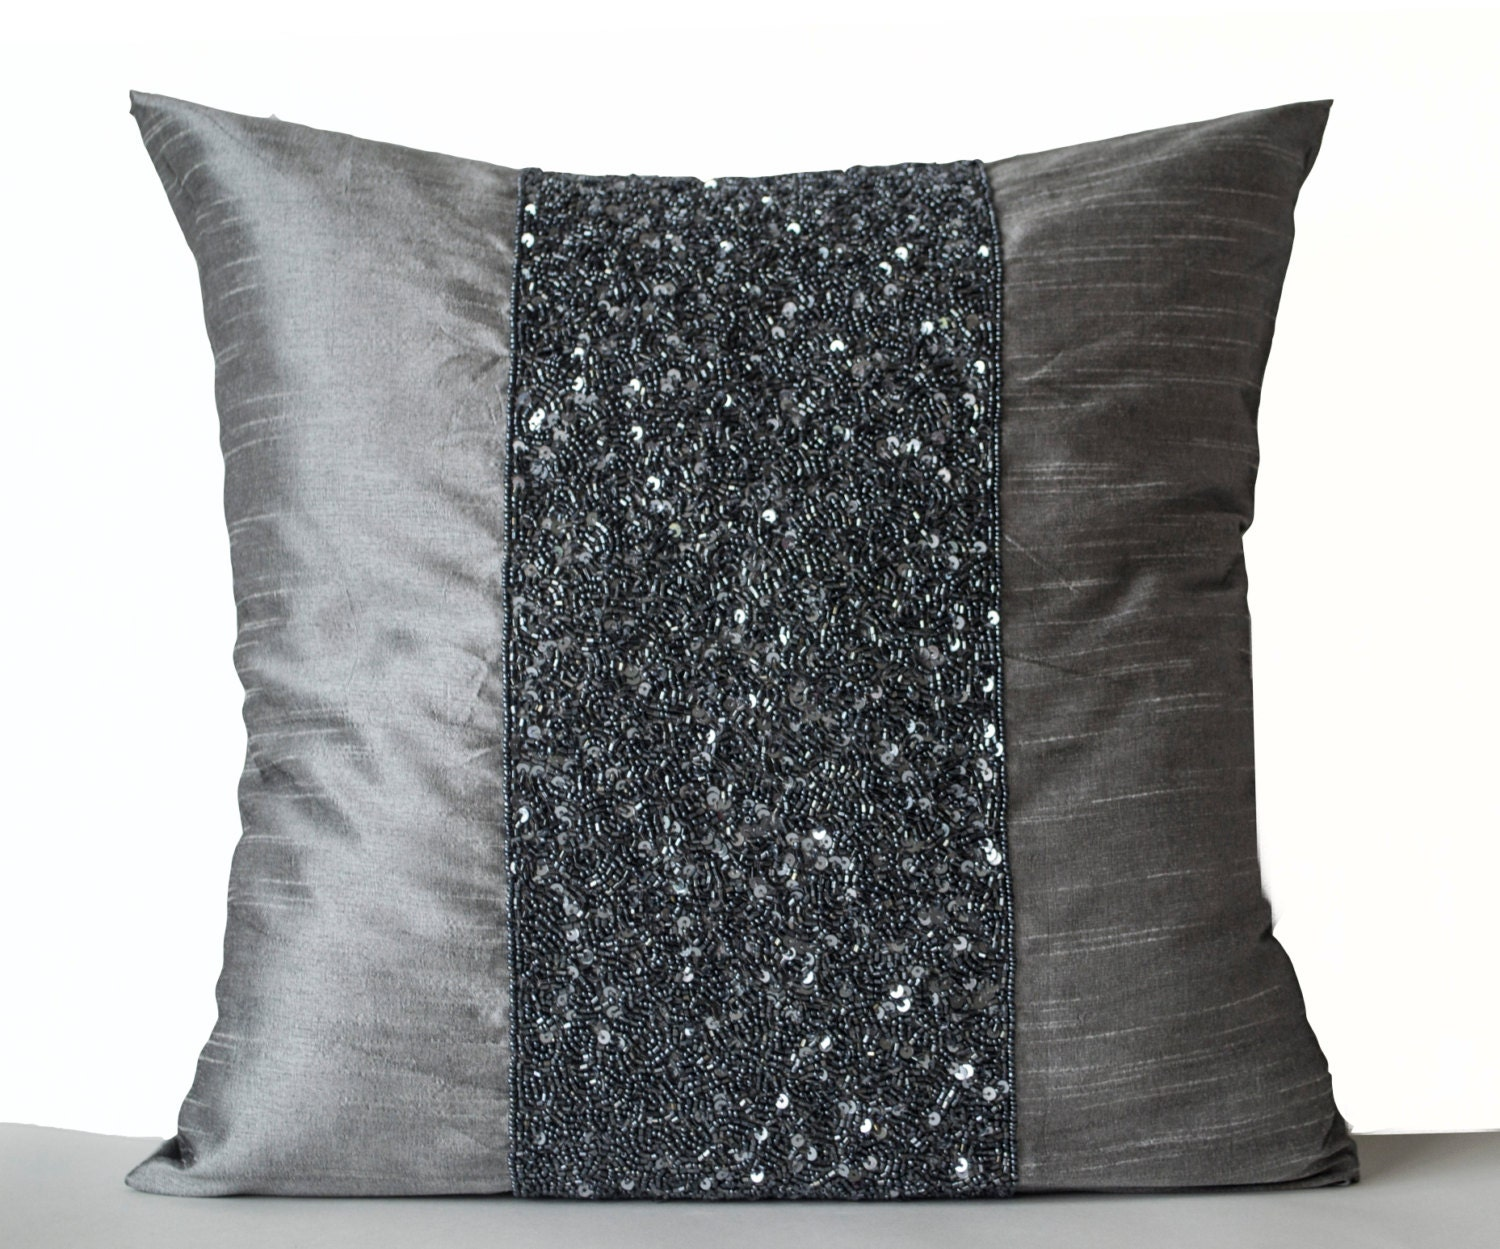 Beaded Pillows Beaded Pillow Cover Metallic Cushion Grey